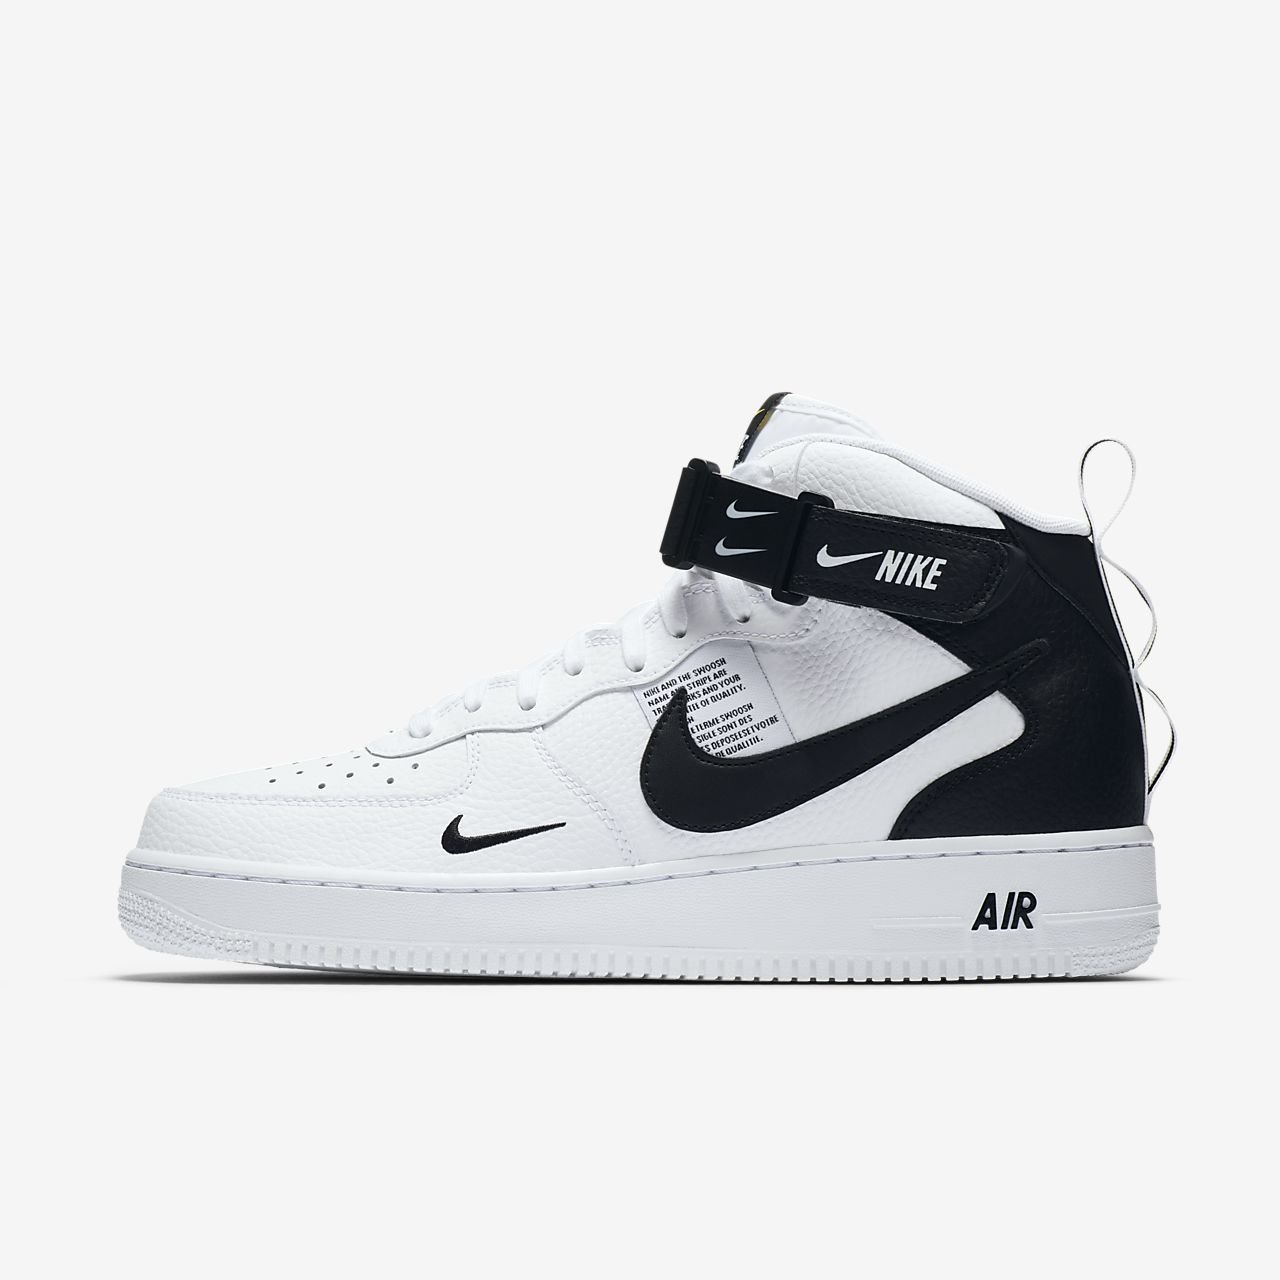 huge discount 3a3d1 29246 Nike Air Force 1 07 Mid LV8 Men's Shoe